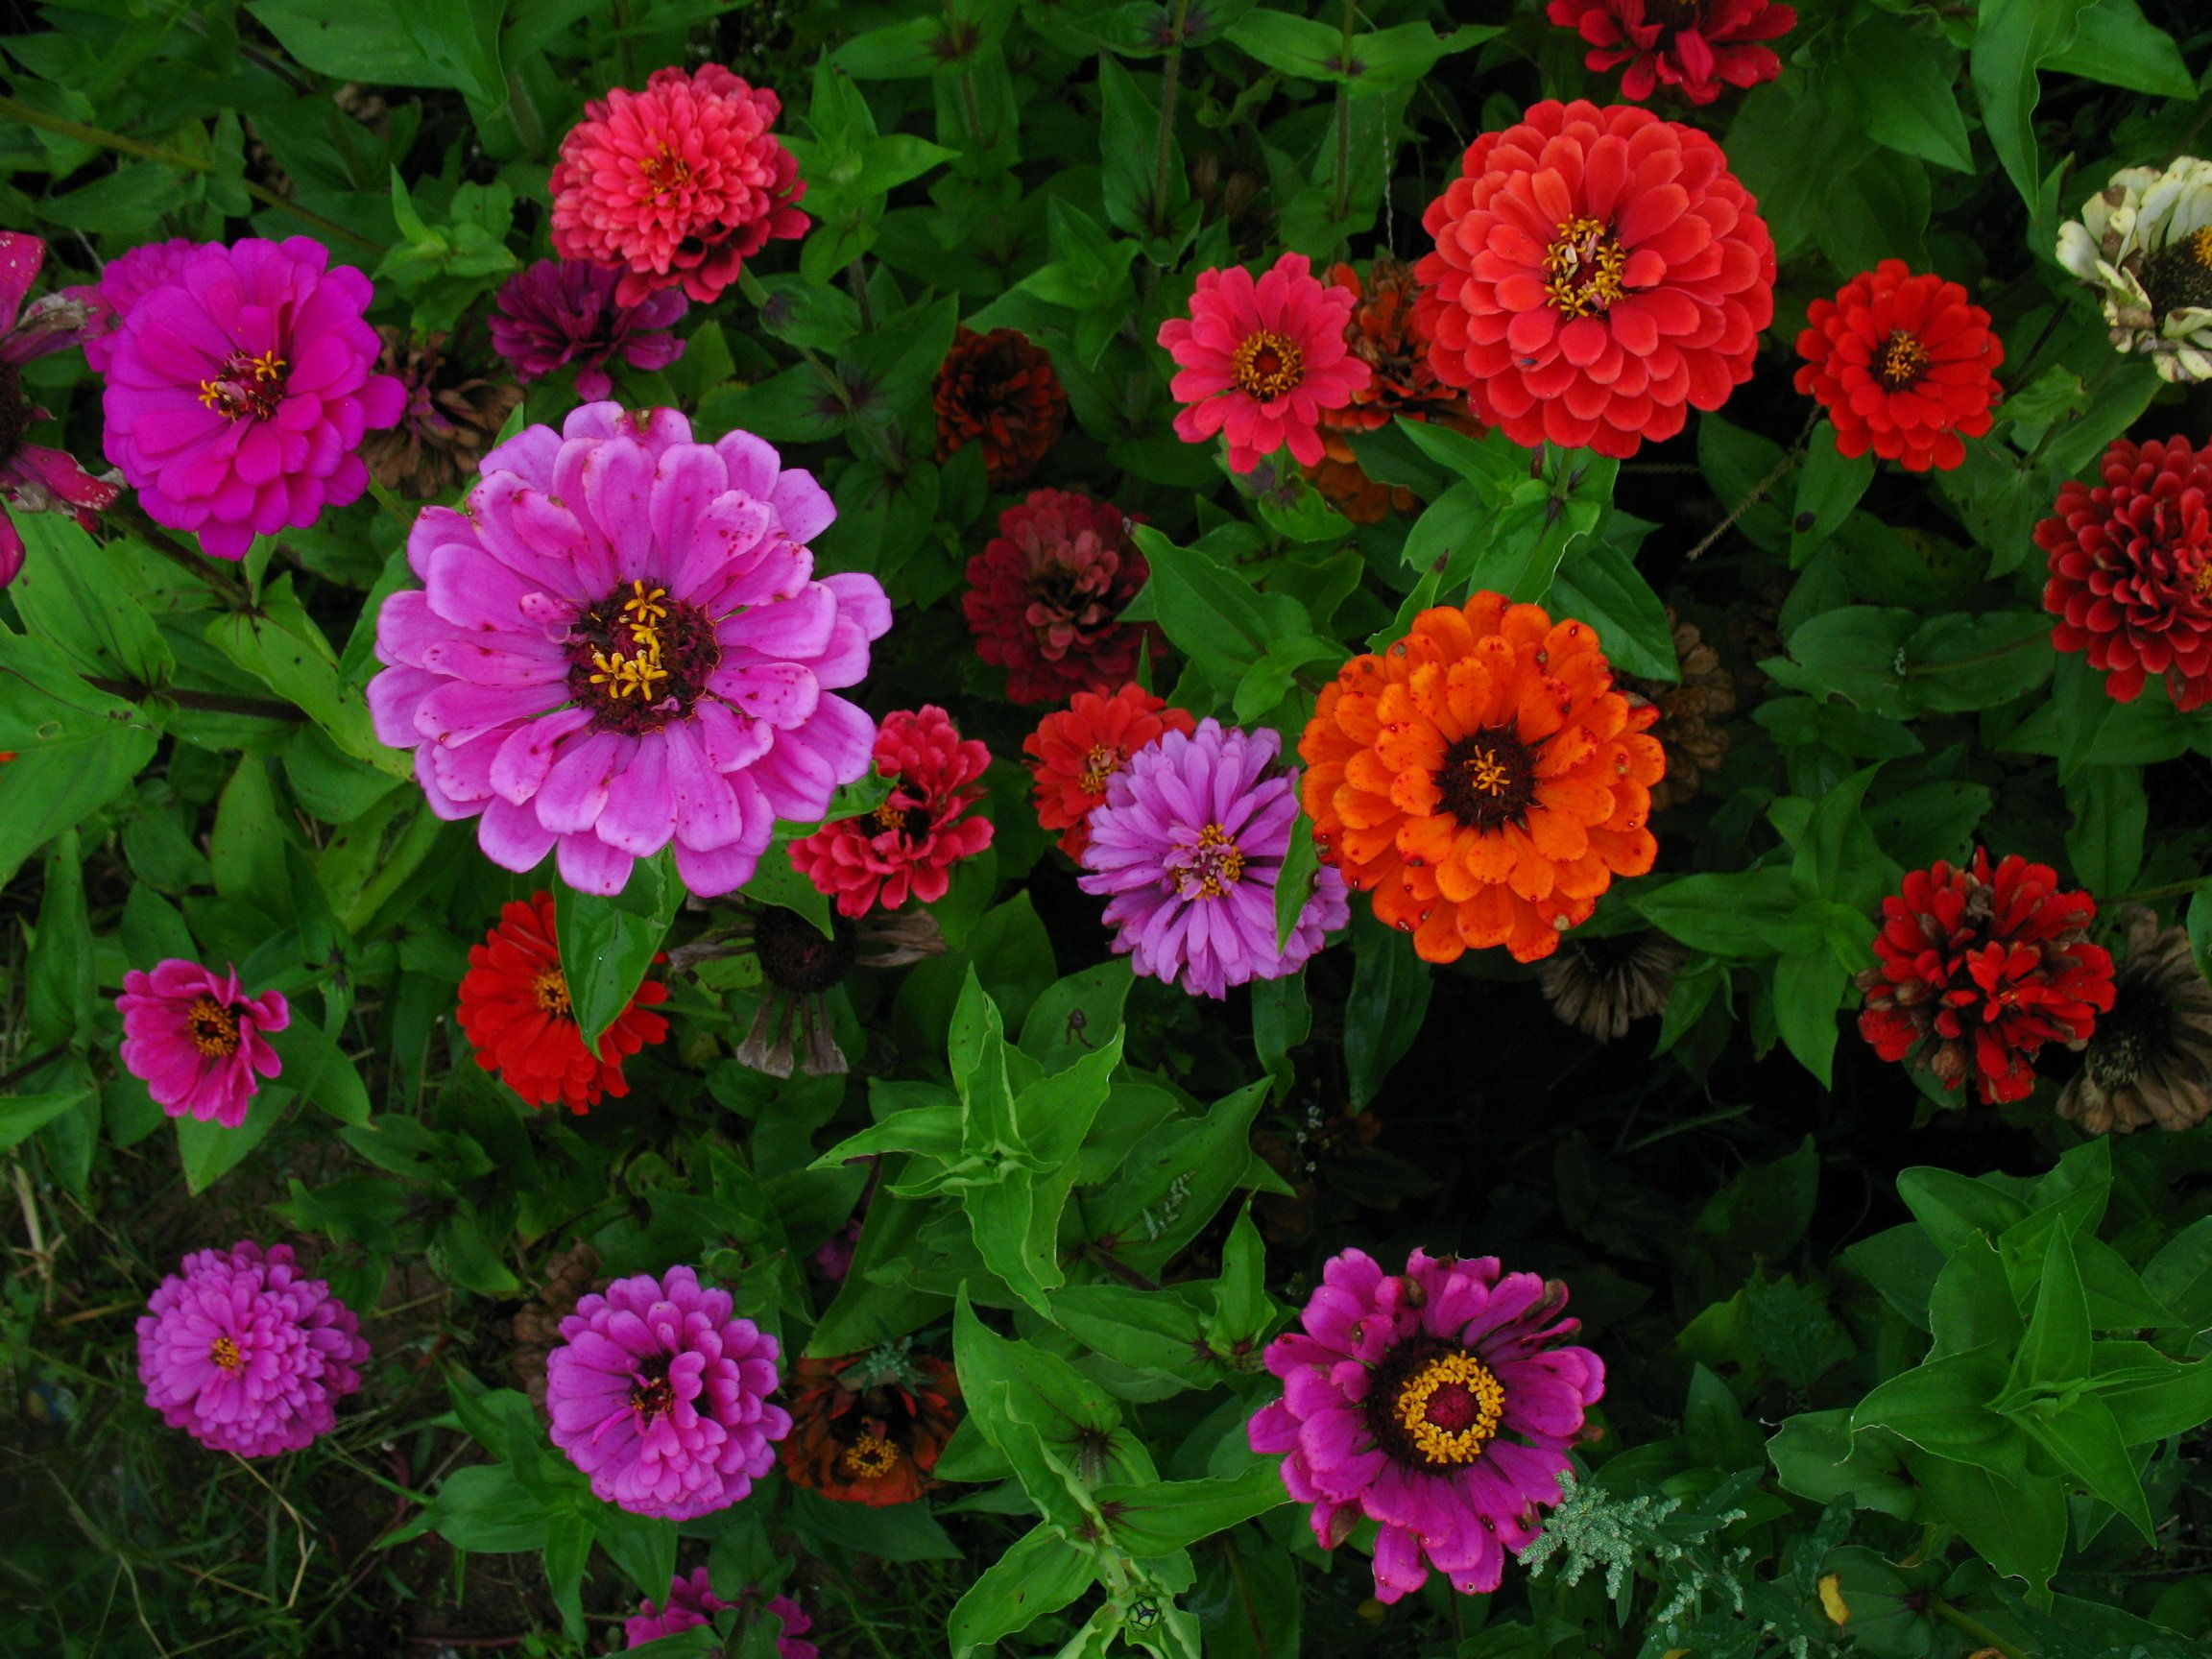 Nature   Flowers Garden flowers zinnia Ciniya at their summer 2304x1728